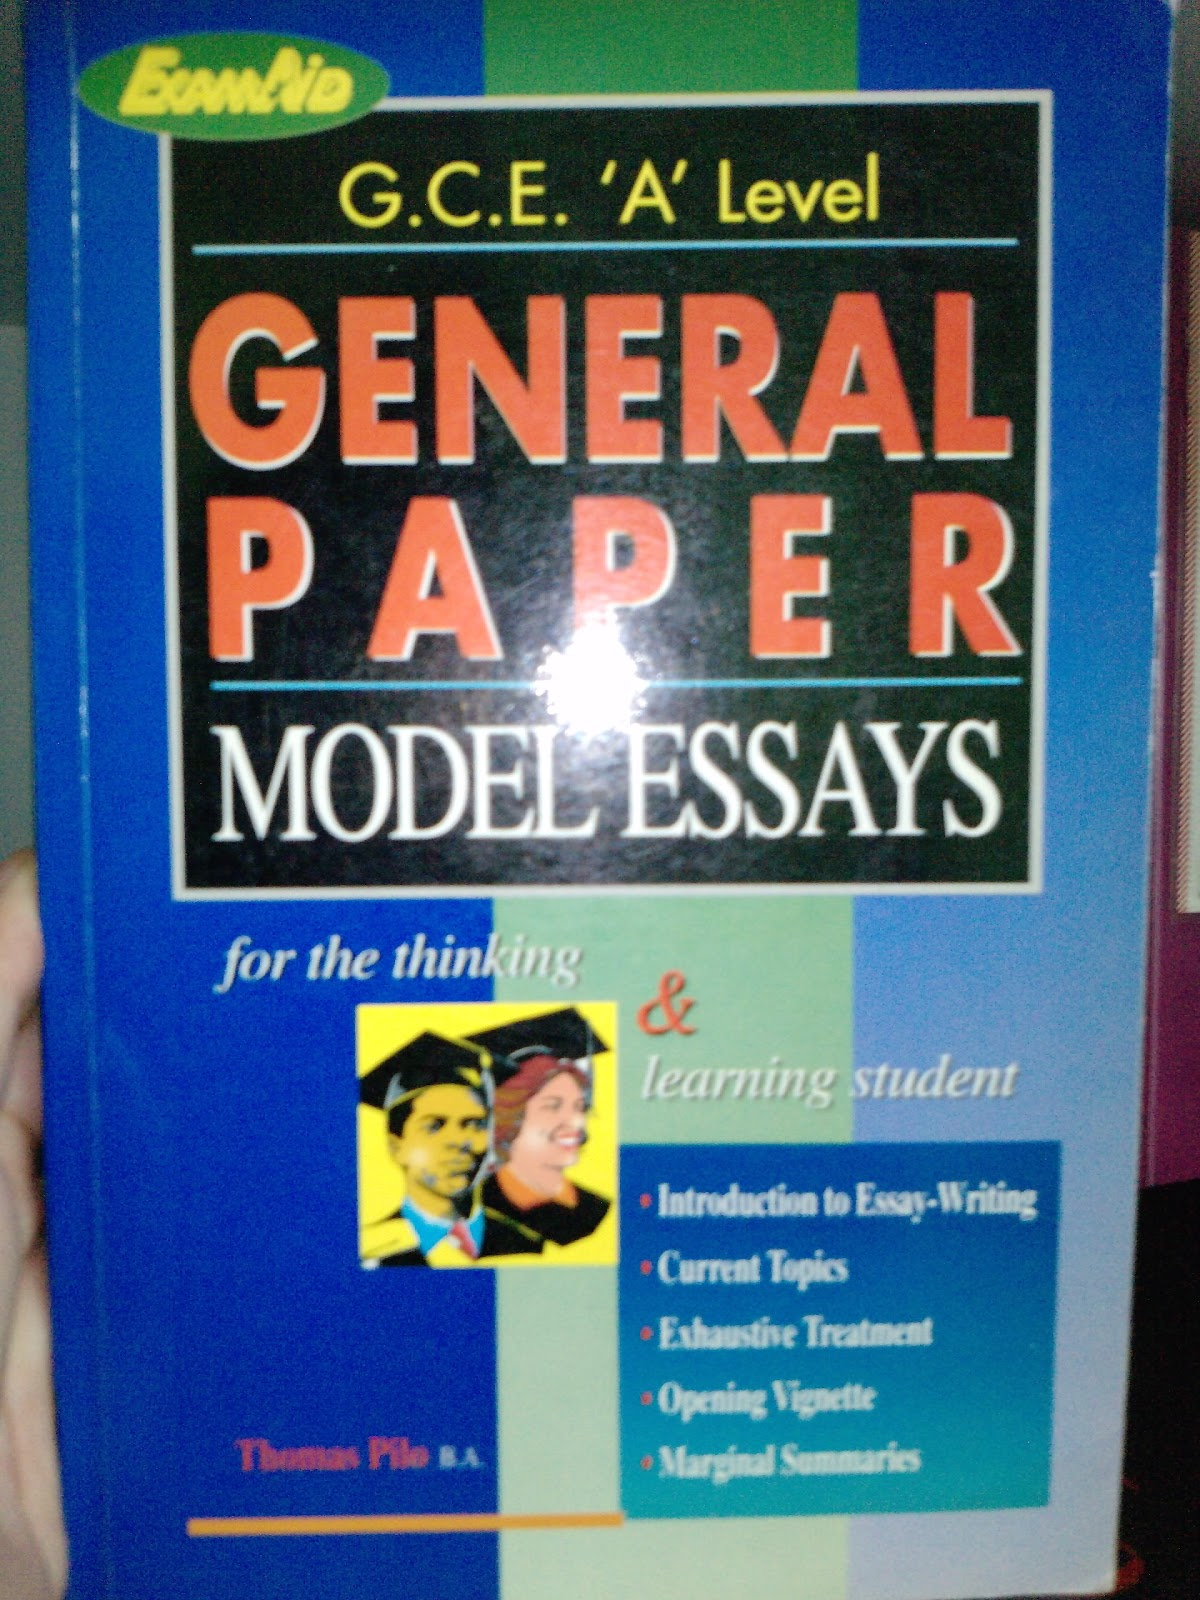 A Level General Paper Model Essays  Online Essay Research  Sample Literature Essay Business Ethics Essay A Level General Paper Model Essays  Online Essay Research  Examples Of Biographical Essays also Thesis Statement Examples For Argumentative Essays